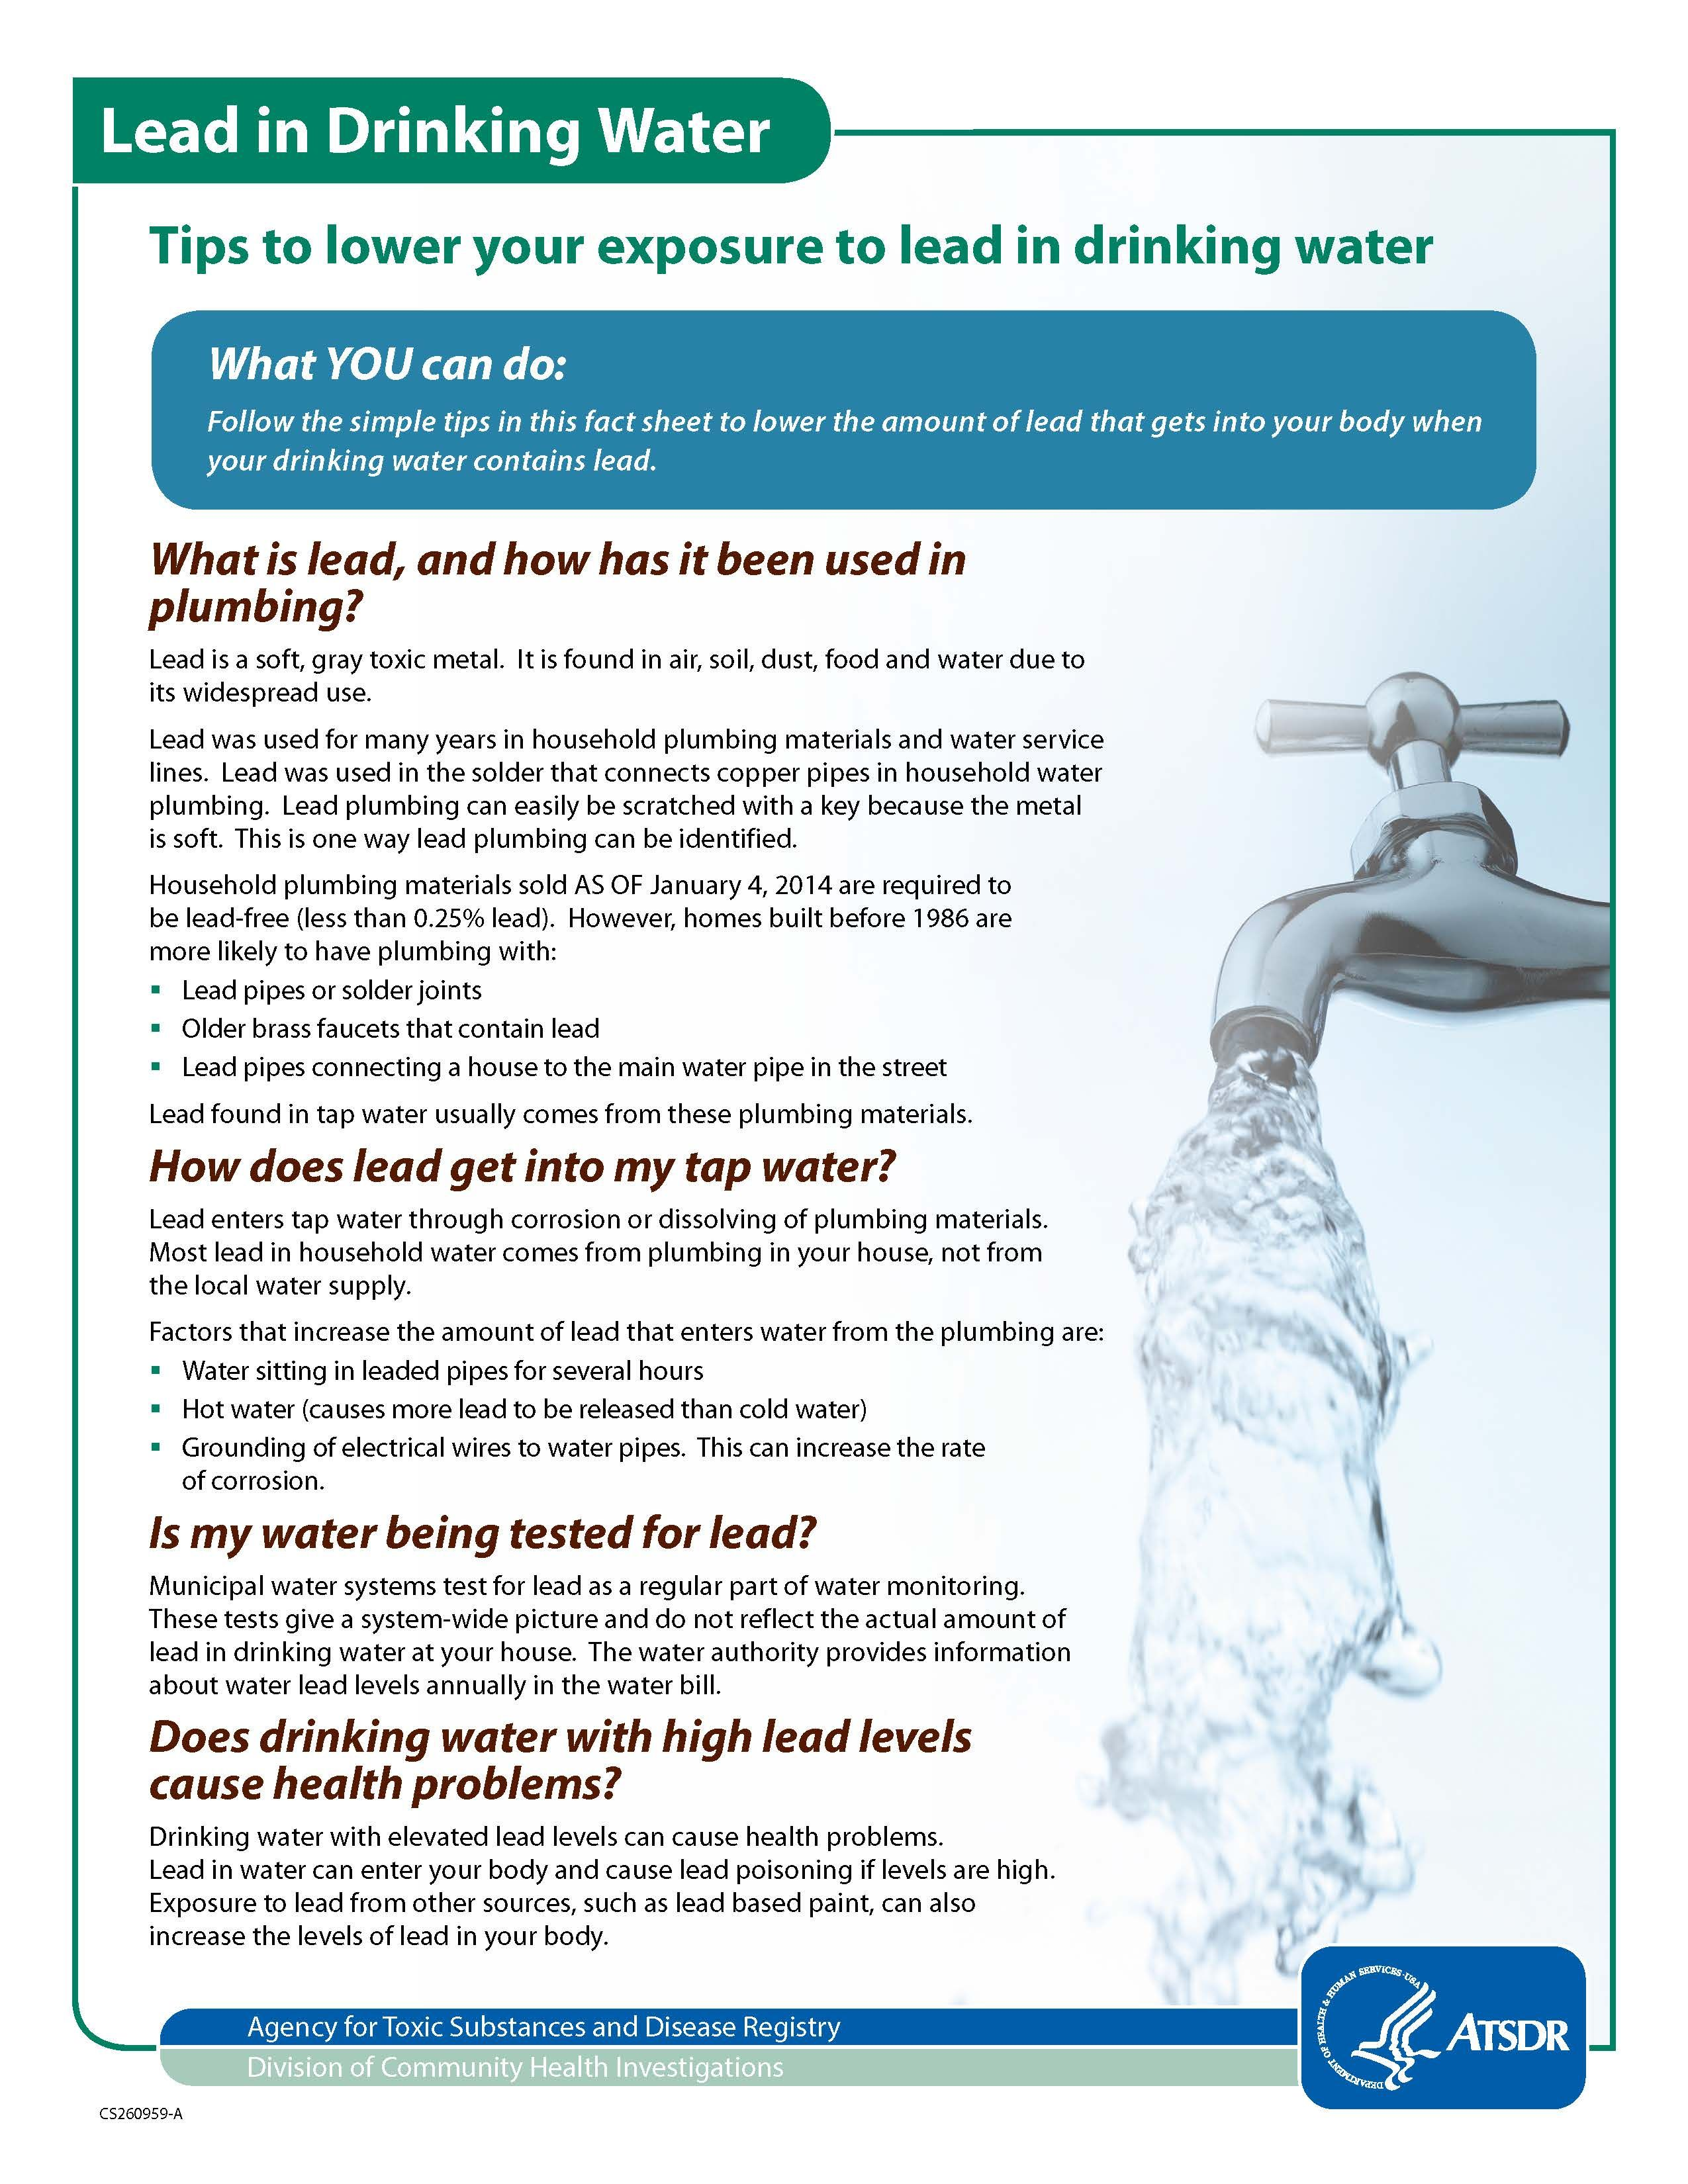 Information on lead in drinking water from atsdr cdc more info information on lead in drinking water from atsdr cdc more info at http nvjuhfo Image collections